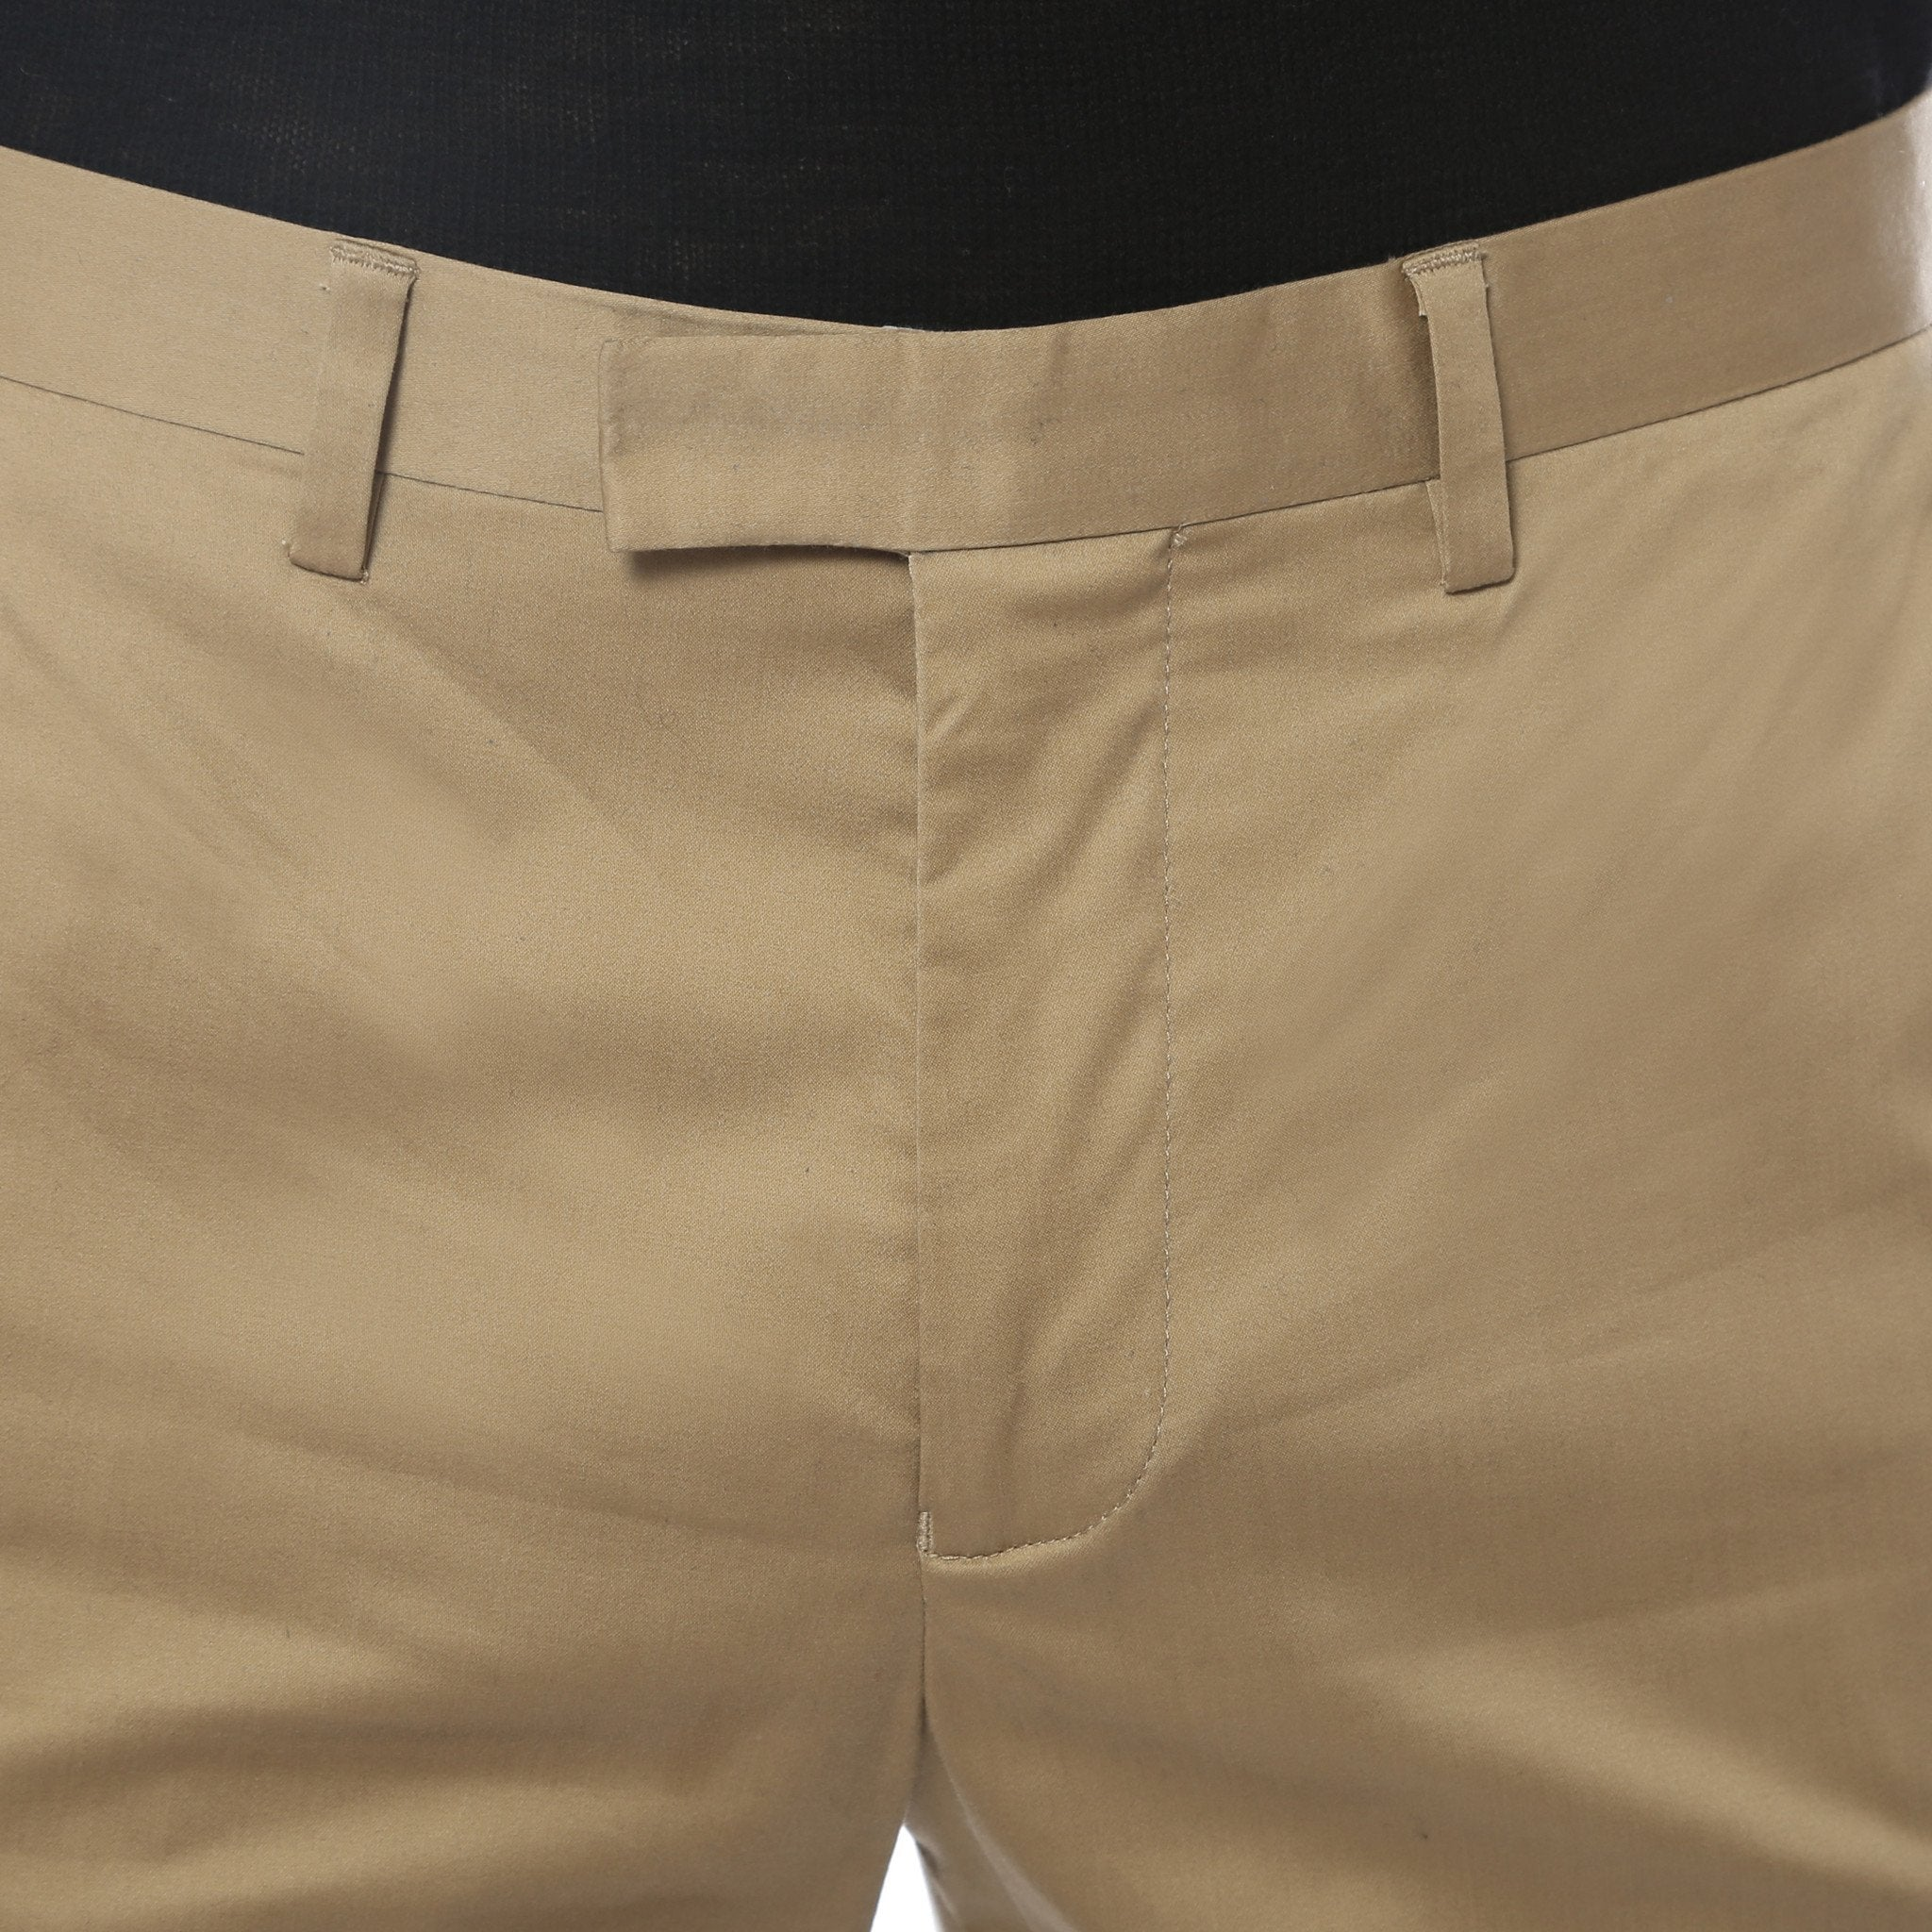 Zonettie Kilo Khaki Straight Leg Chino Pants - Giorgio's Menswear